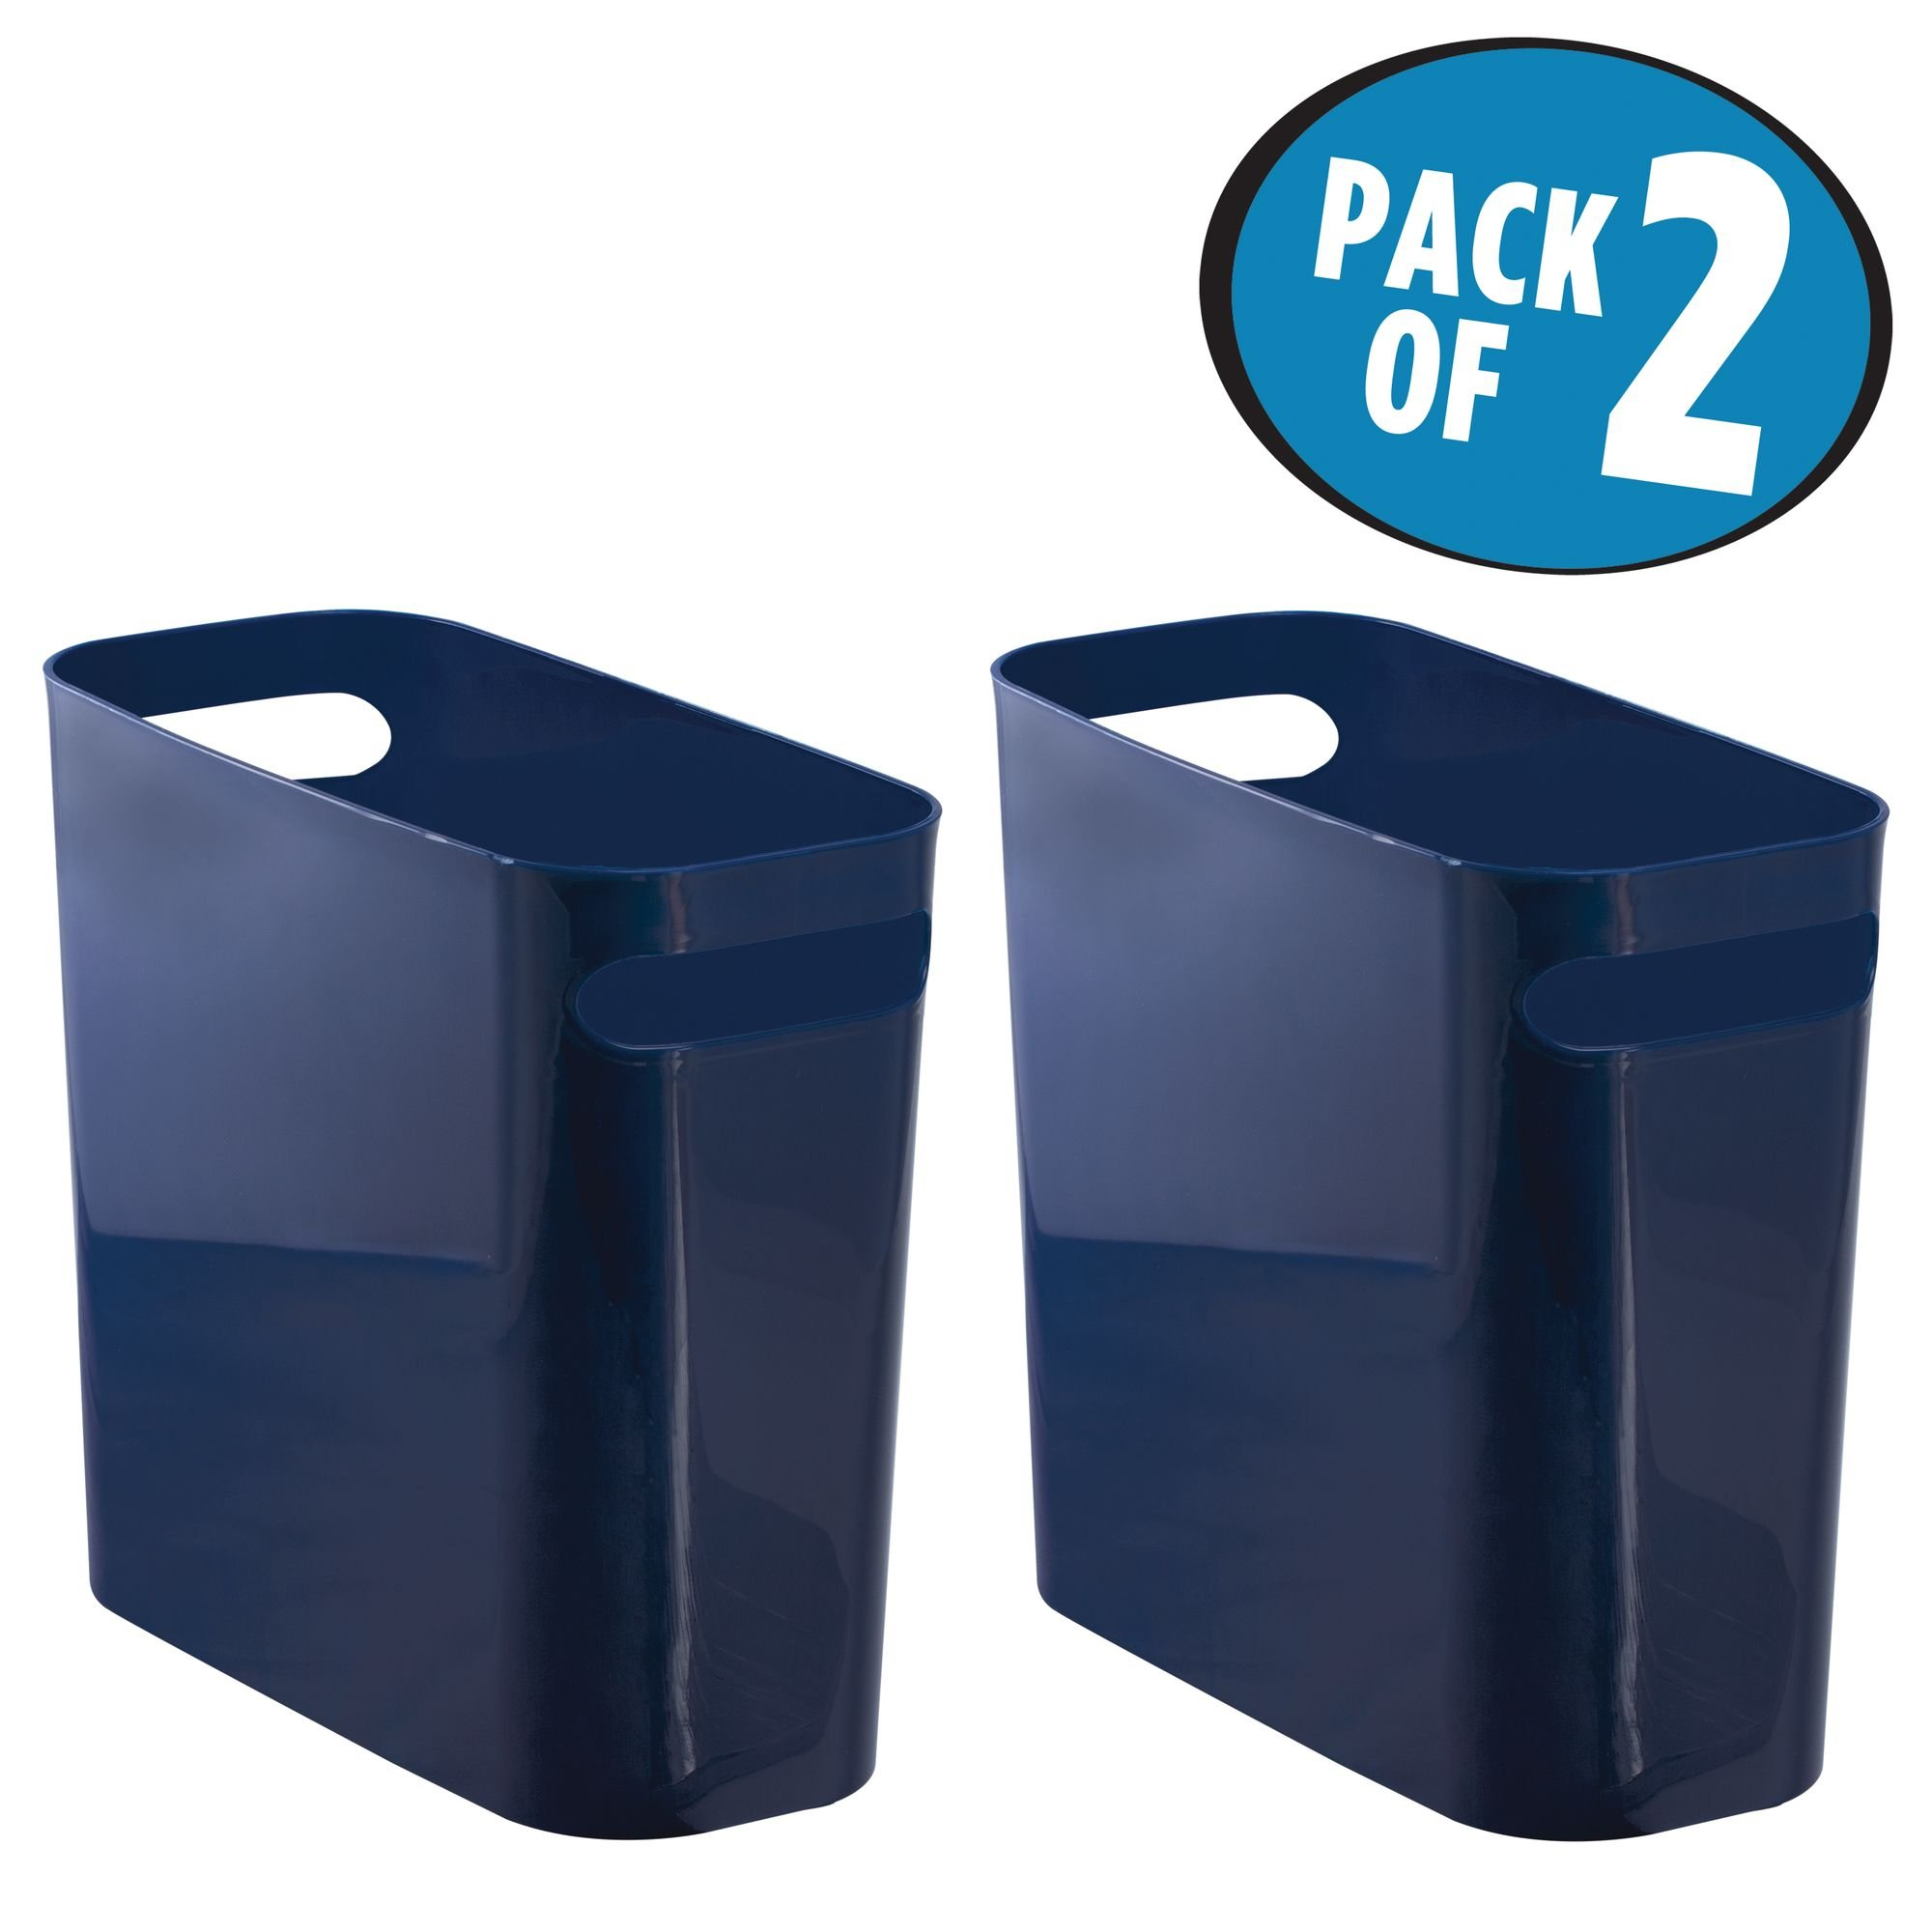 mDesign Slim Rectangular Trash Can Wastebasket, Garbage Container Bin with Handles for Bathrooms, Kitchens, Home Offices, Dorms, Kids Rooms — Pack of 2, 10 inch high, Shatter-Resistant Plastic, Navy B